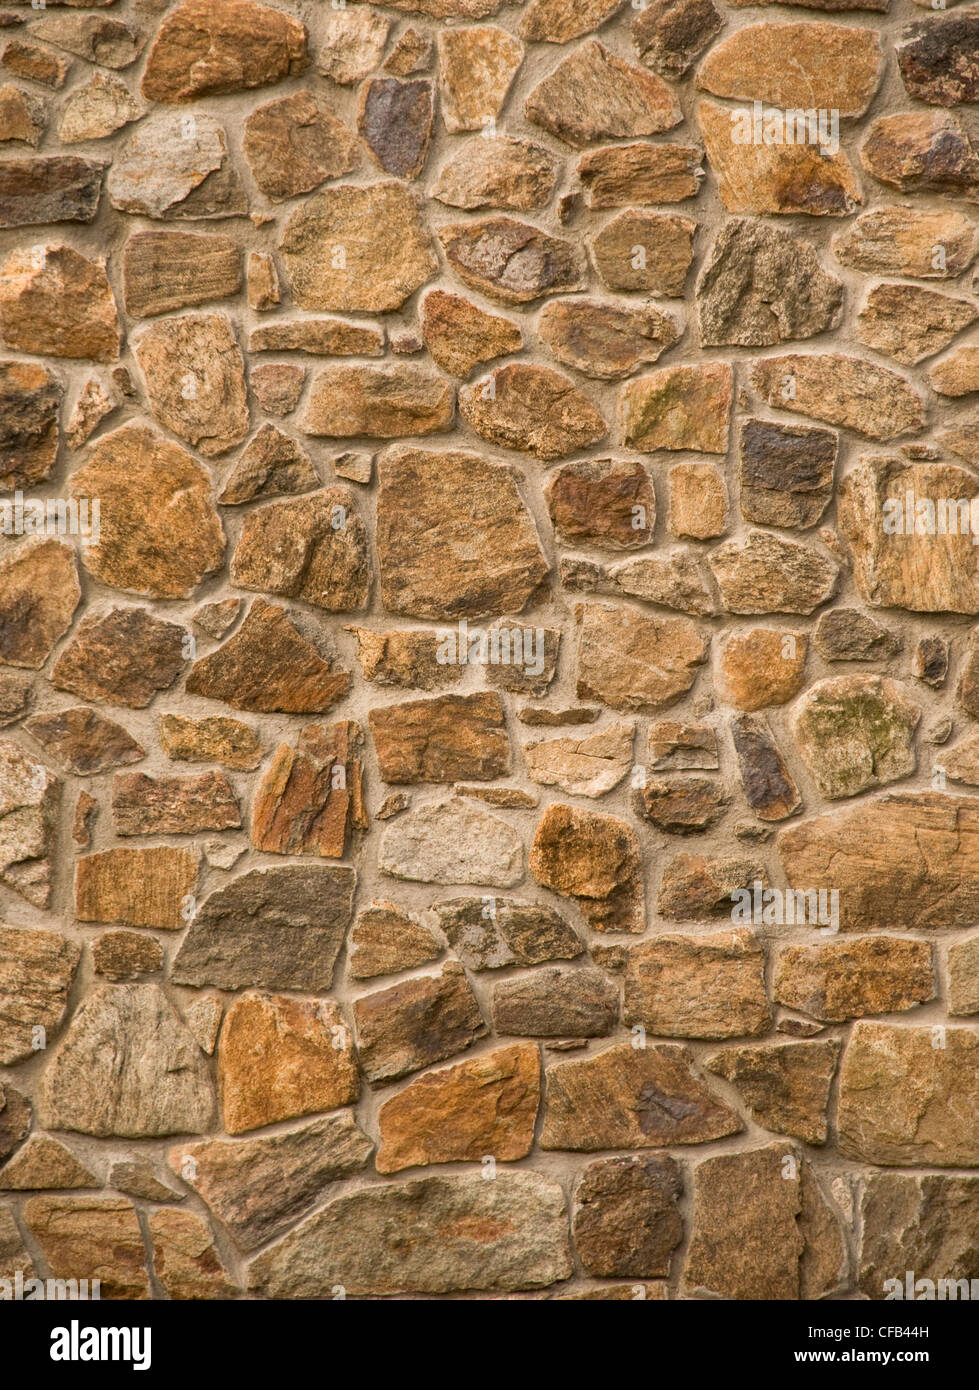 Brown masonry rock wall - Stock Image